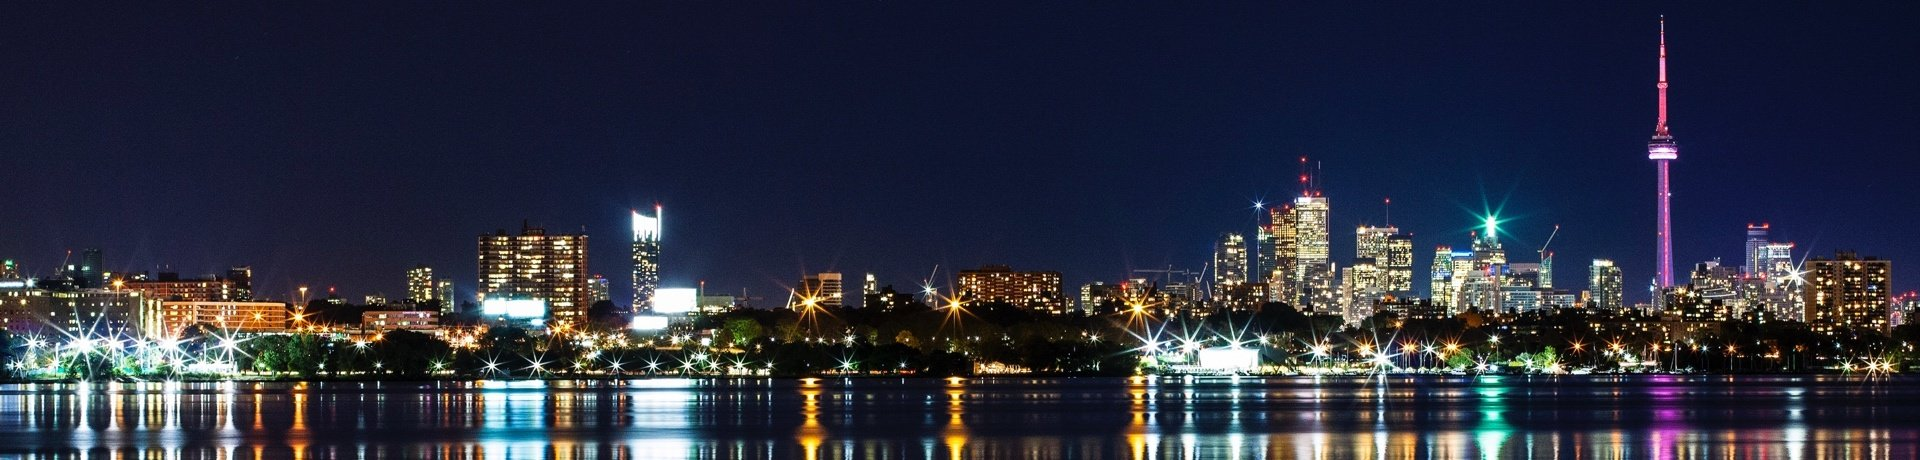 Exbound Toronto night sky 1920x460